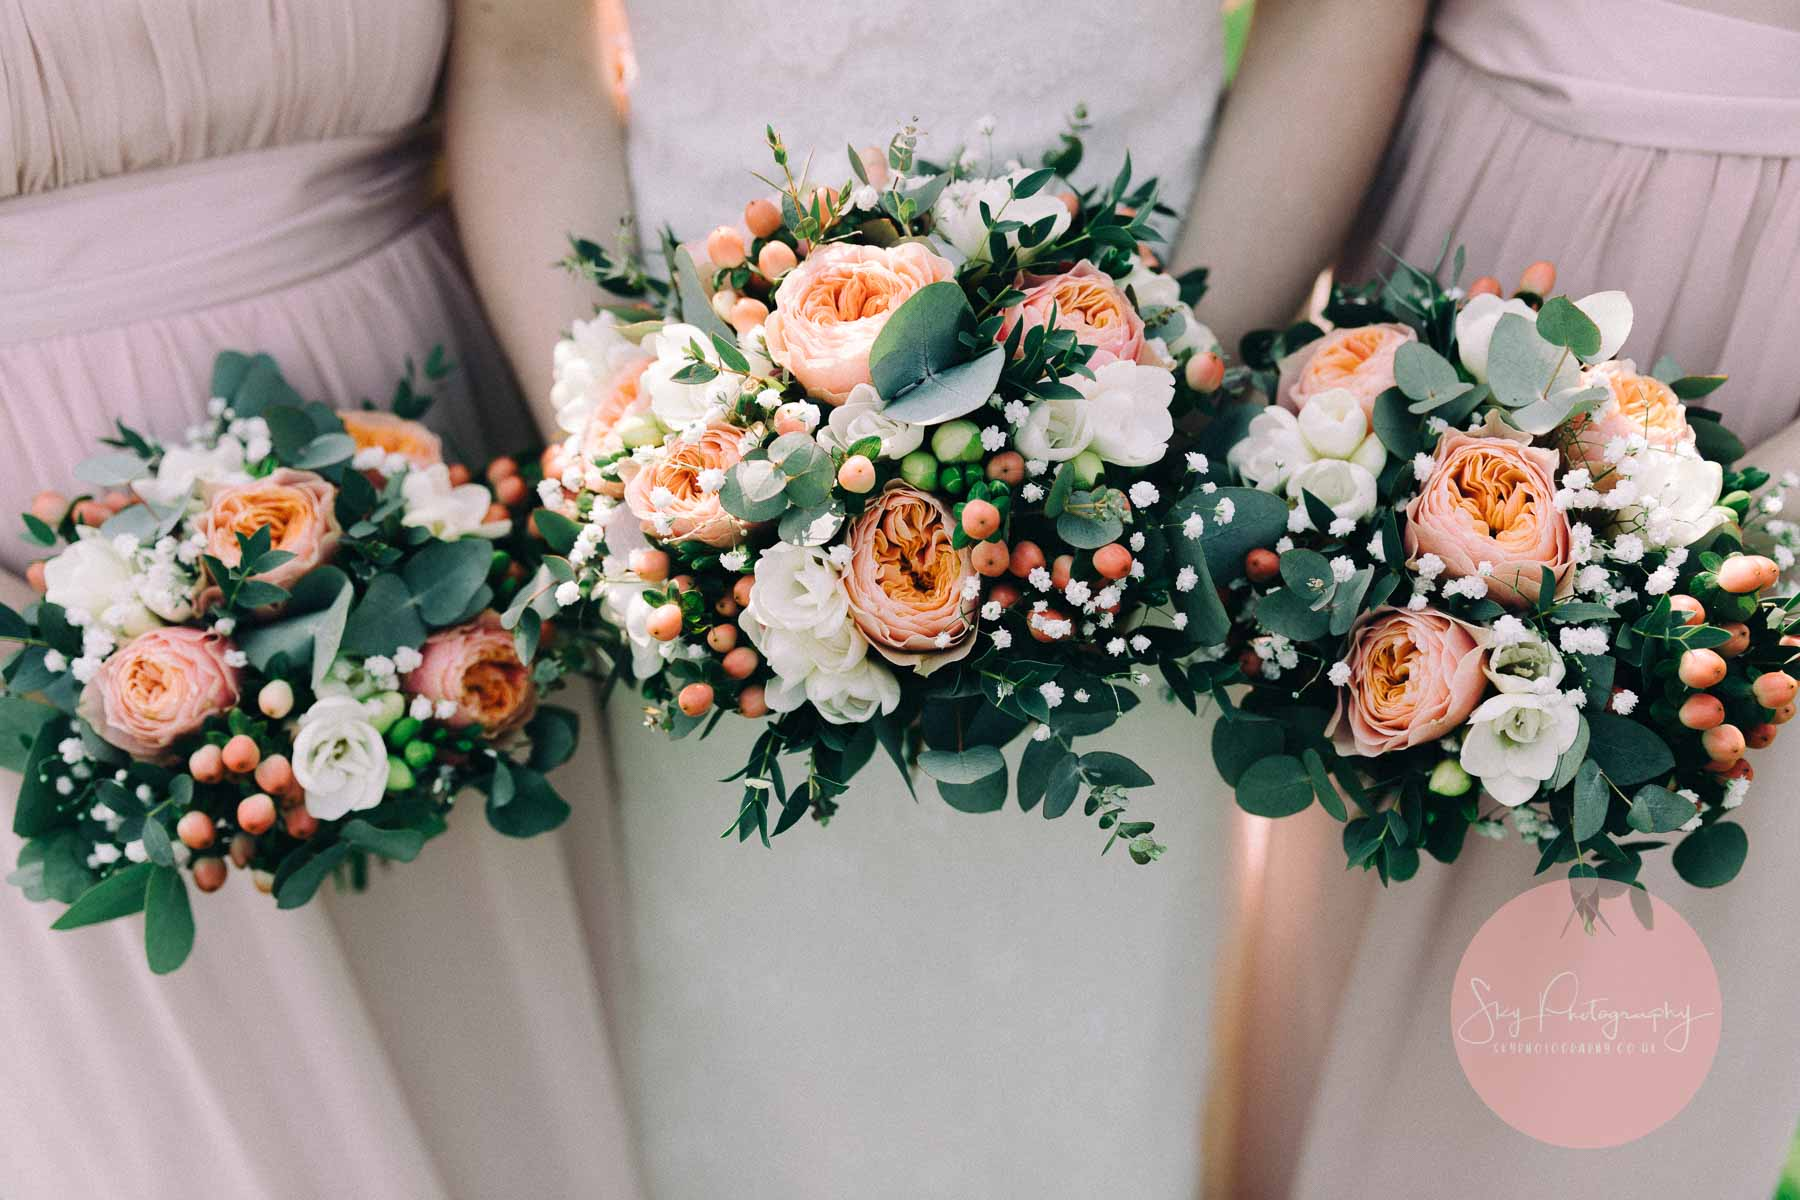 Beautiful bouquets of flowers held by bride and bridesmaids